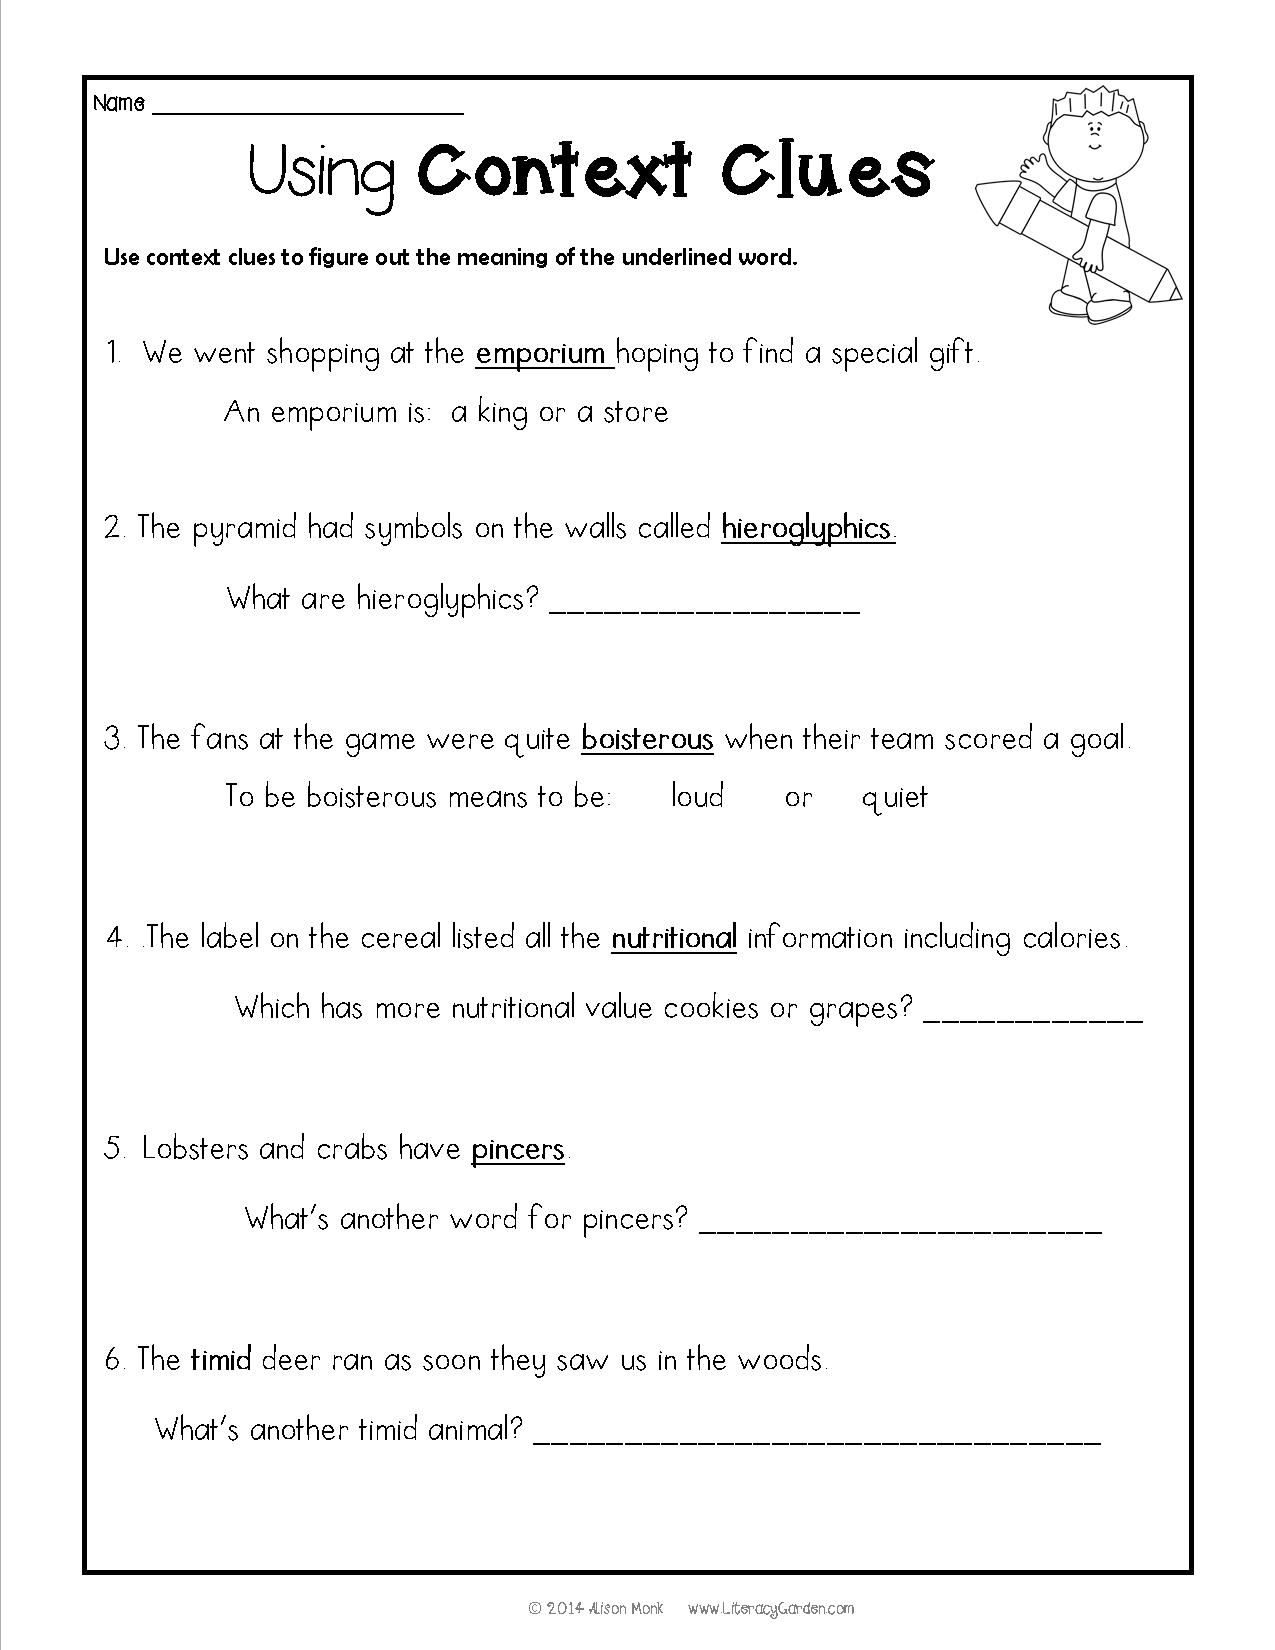 Context Clues Worksheets 3Rd Grade For Learning - Math Worksheet For - Free Printable 5Th Grade Context Clues Worksheets